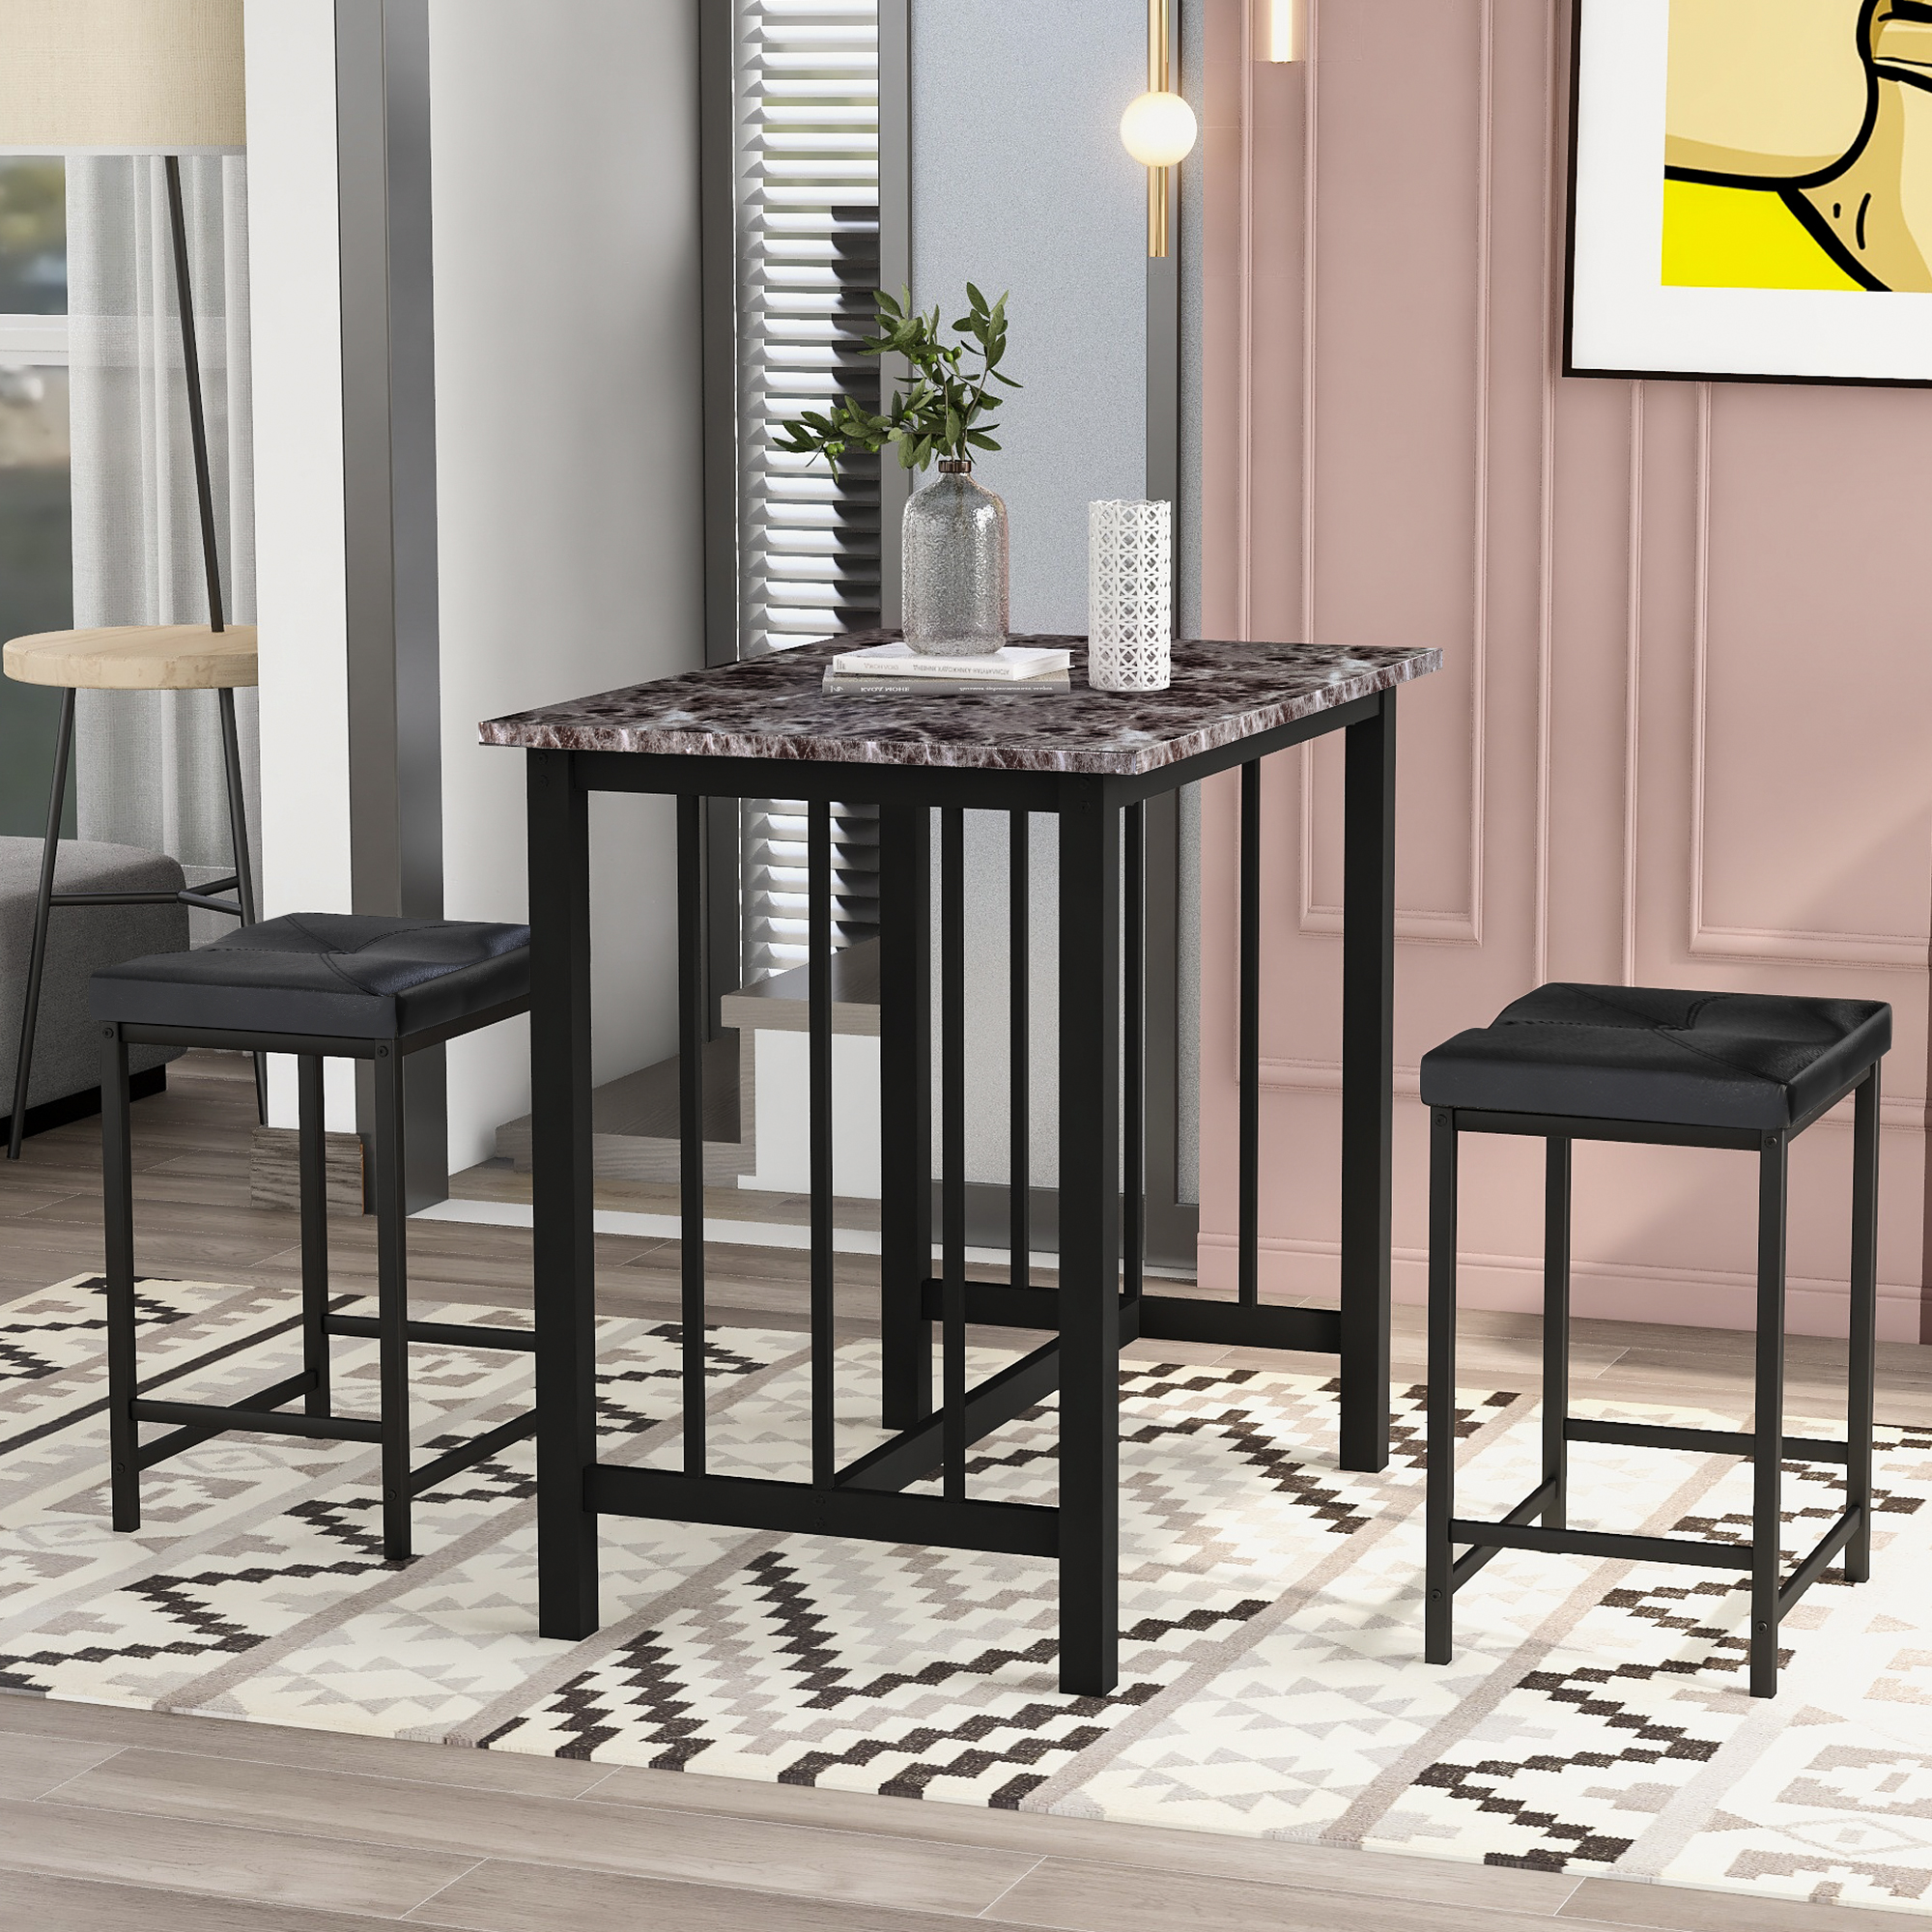 Toyosun 3 Piece Bar Table Set Kitchen Counter Height Dining Set Bar Table With 2 Bar Stools Industrial For Kitchen Living Room Marble Walmart Com Walmart Com